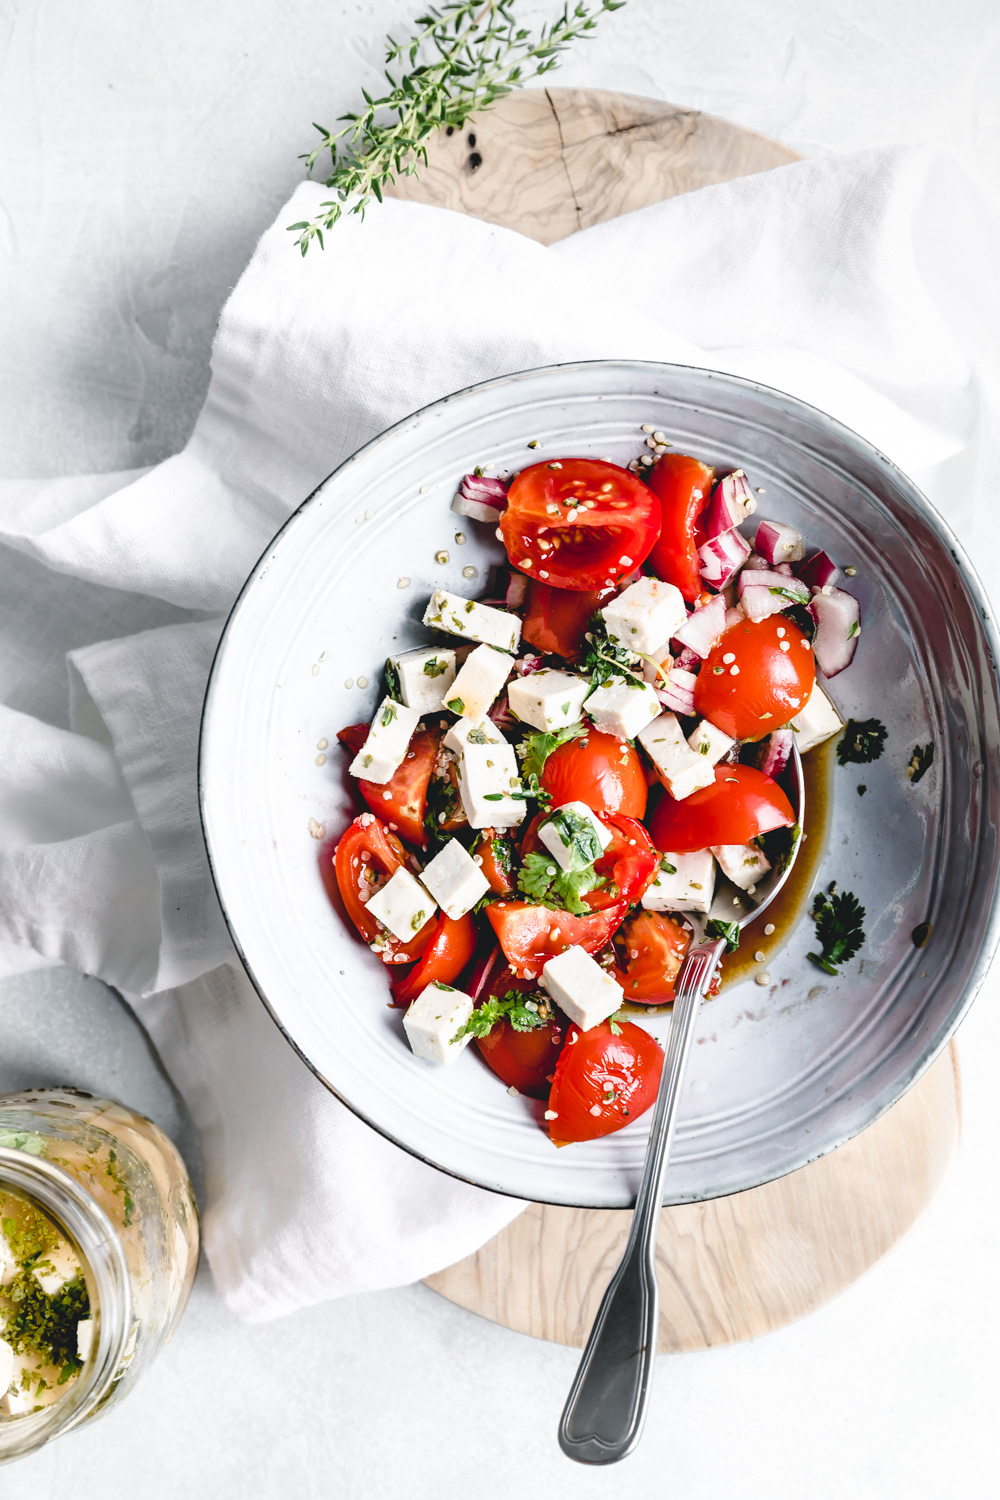 feta cheese in tomato salad